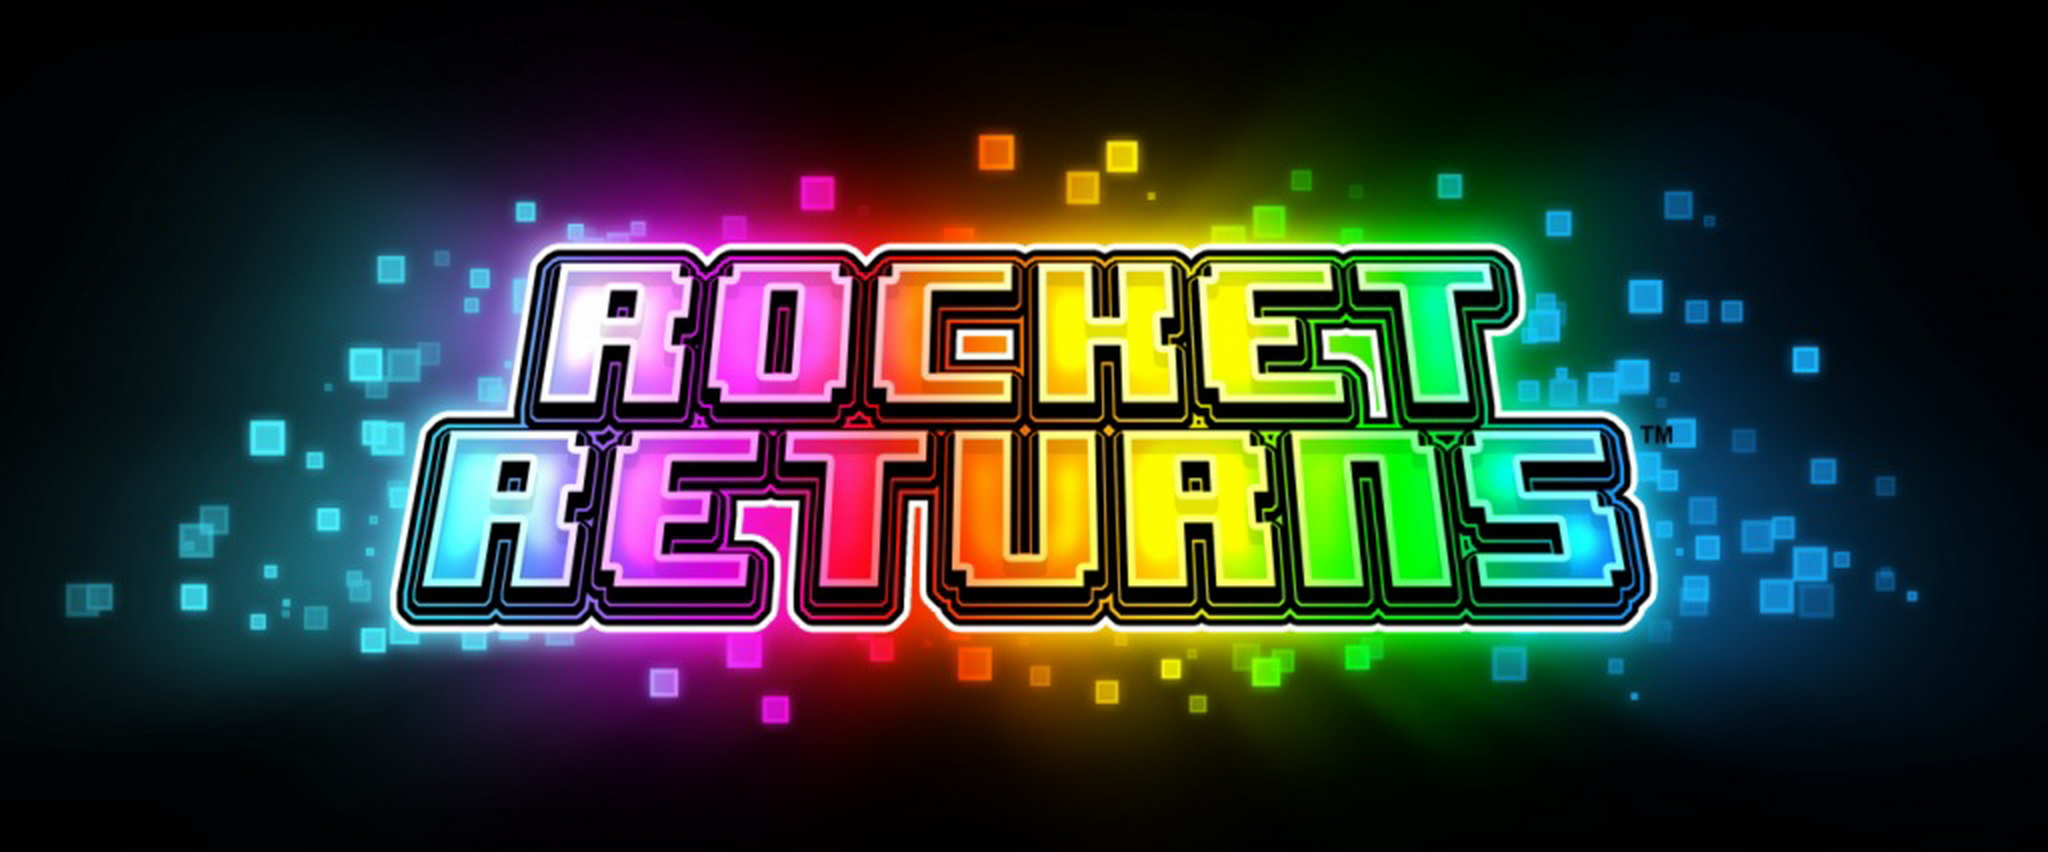 The Rocket Returns Online Slot Demo Game by Bally Technologies